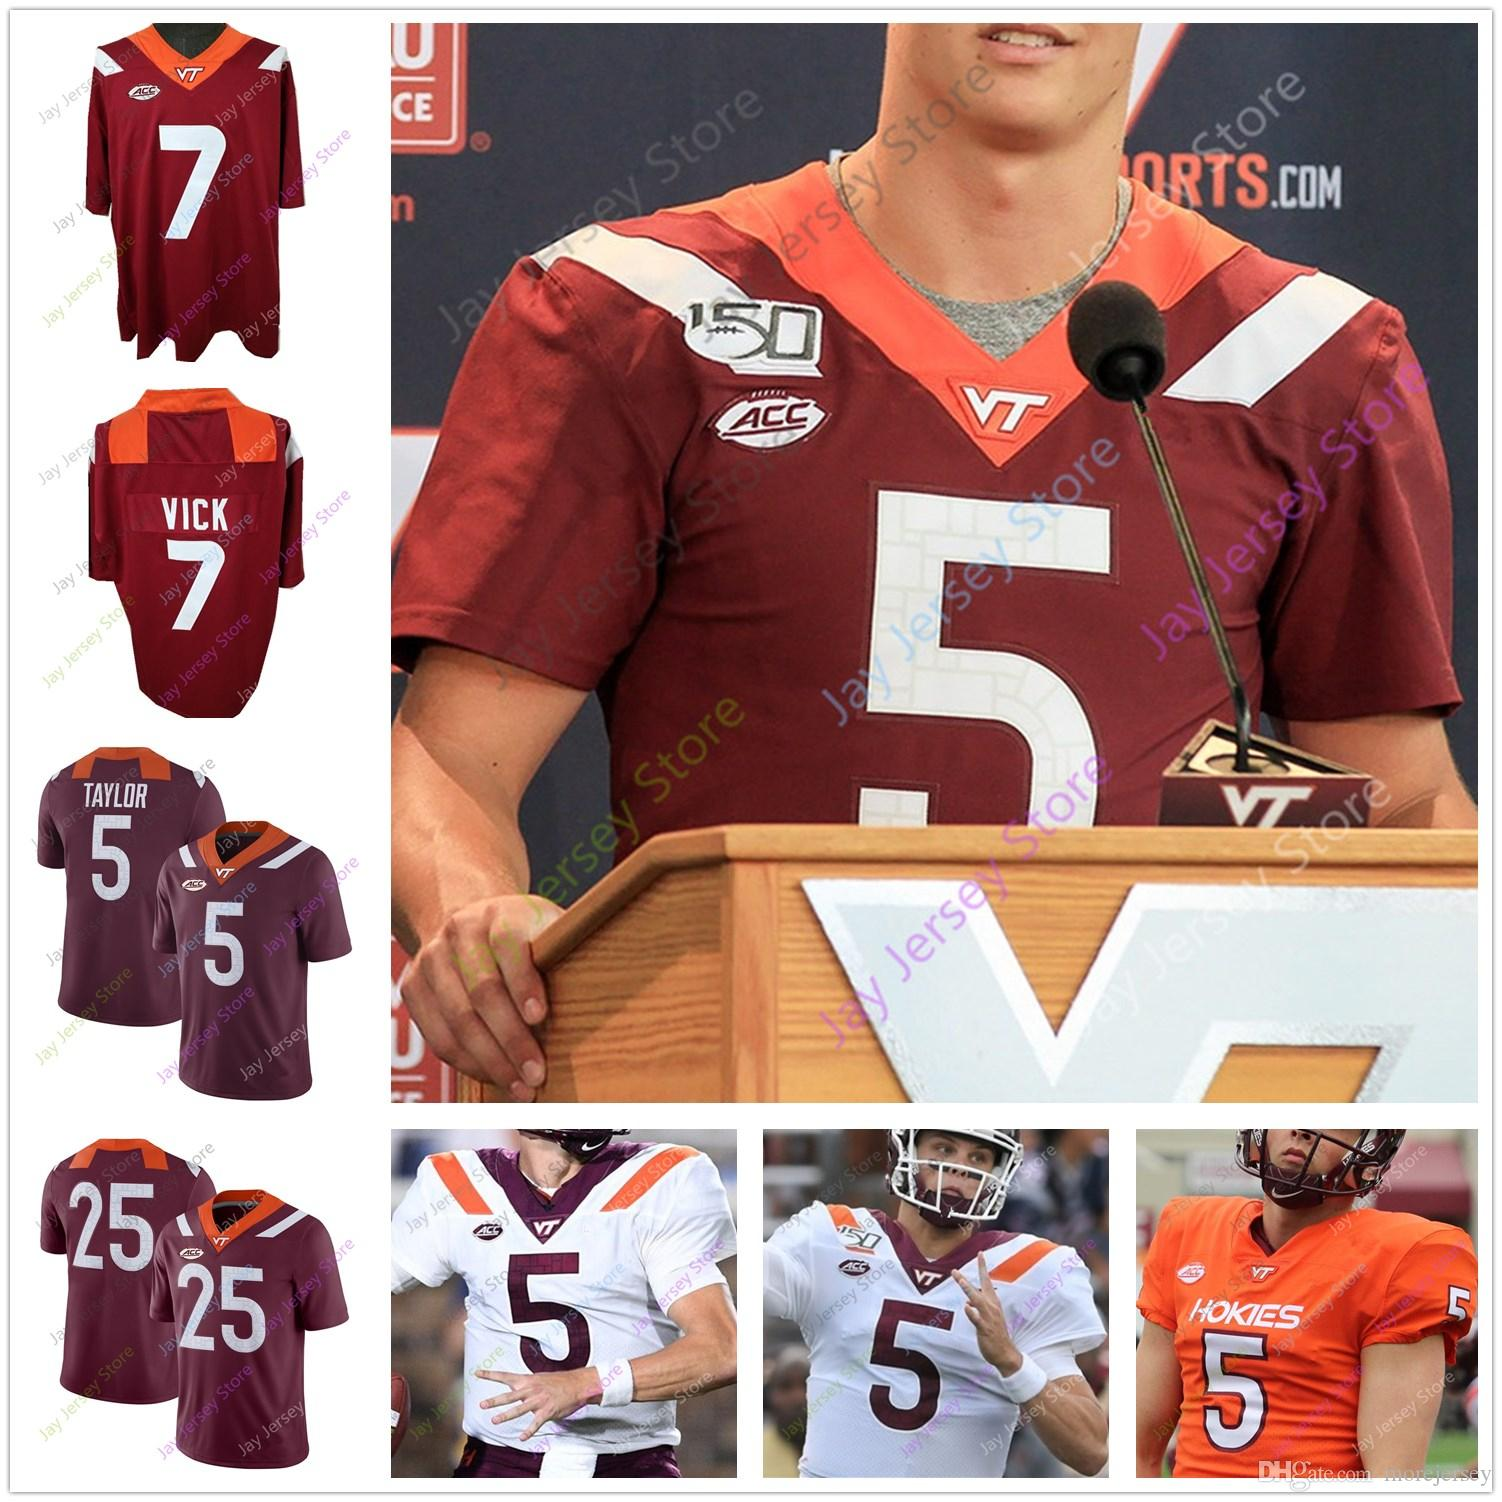 2019 2020 Virginia Tech Football Jersey College 4 Quincy Patterson II 22 Terrell Edmunds49 Tremaine Edmunds 17 Kyle Fuller 5 Tyrod Taylor